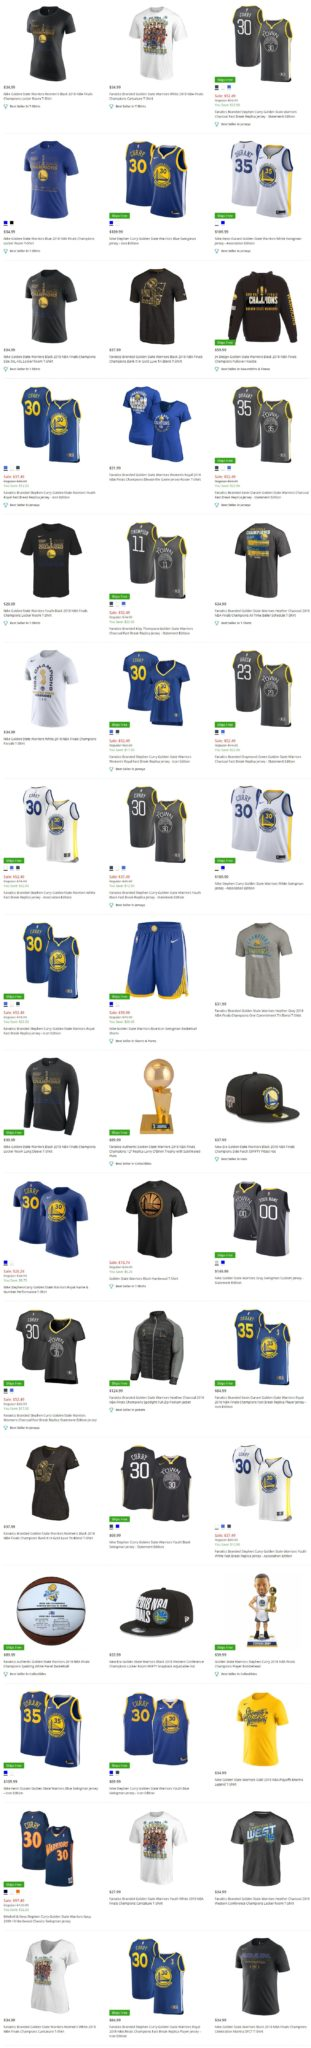 hot sales 5058b e1201 Golden State Warriors Apparel, GSW Team Store - FATHERS DAY ...